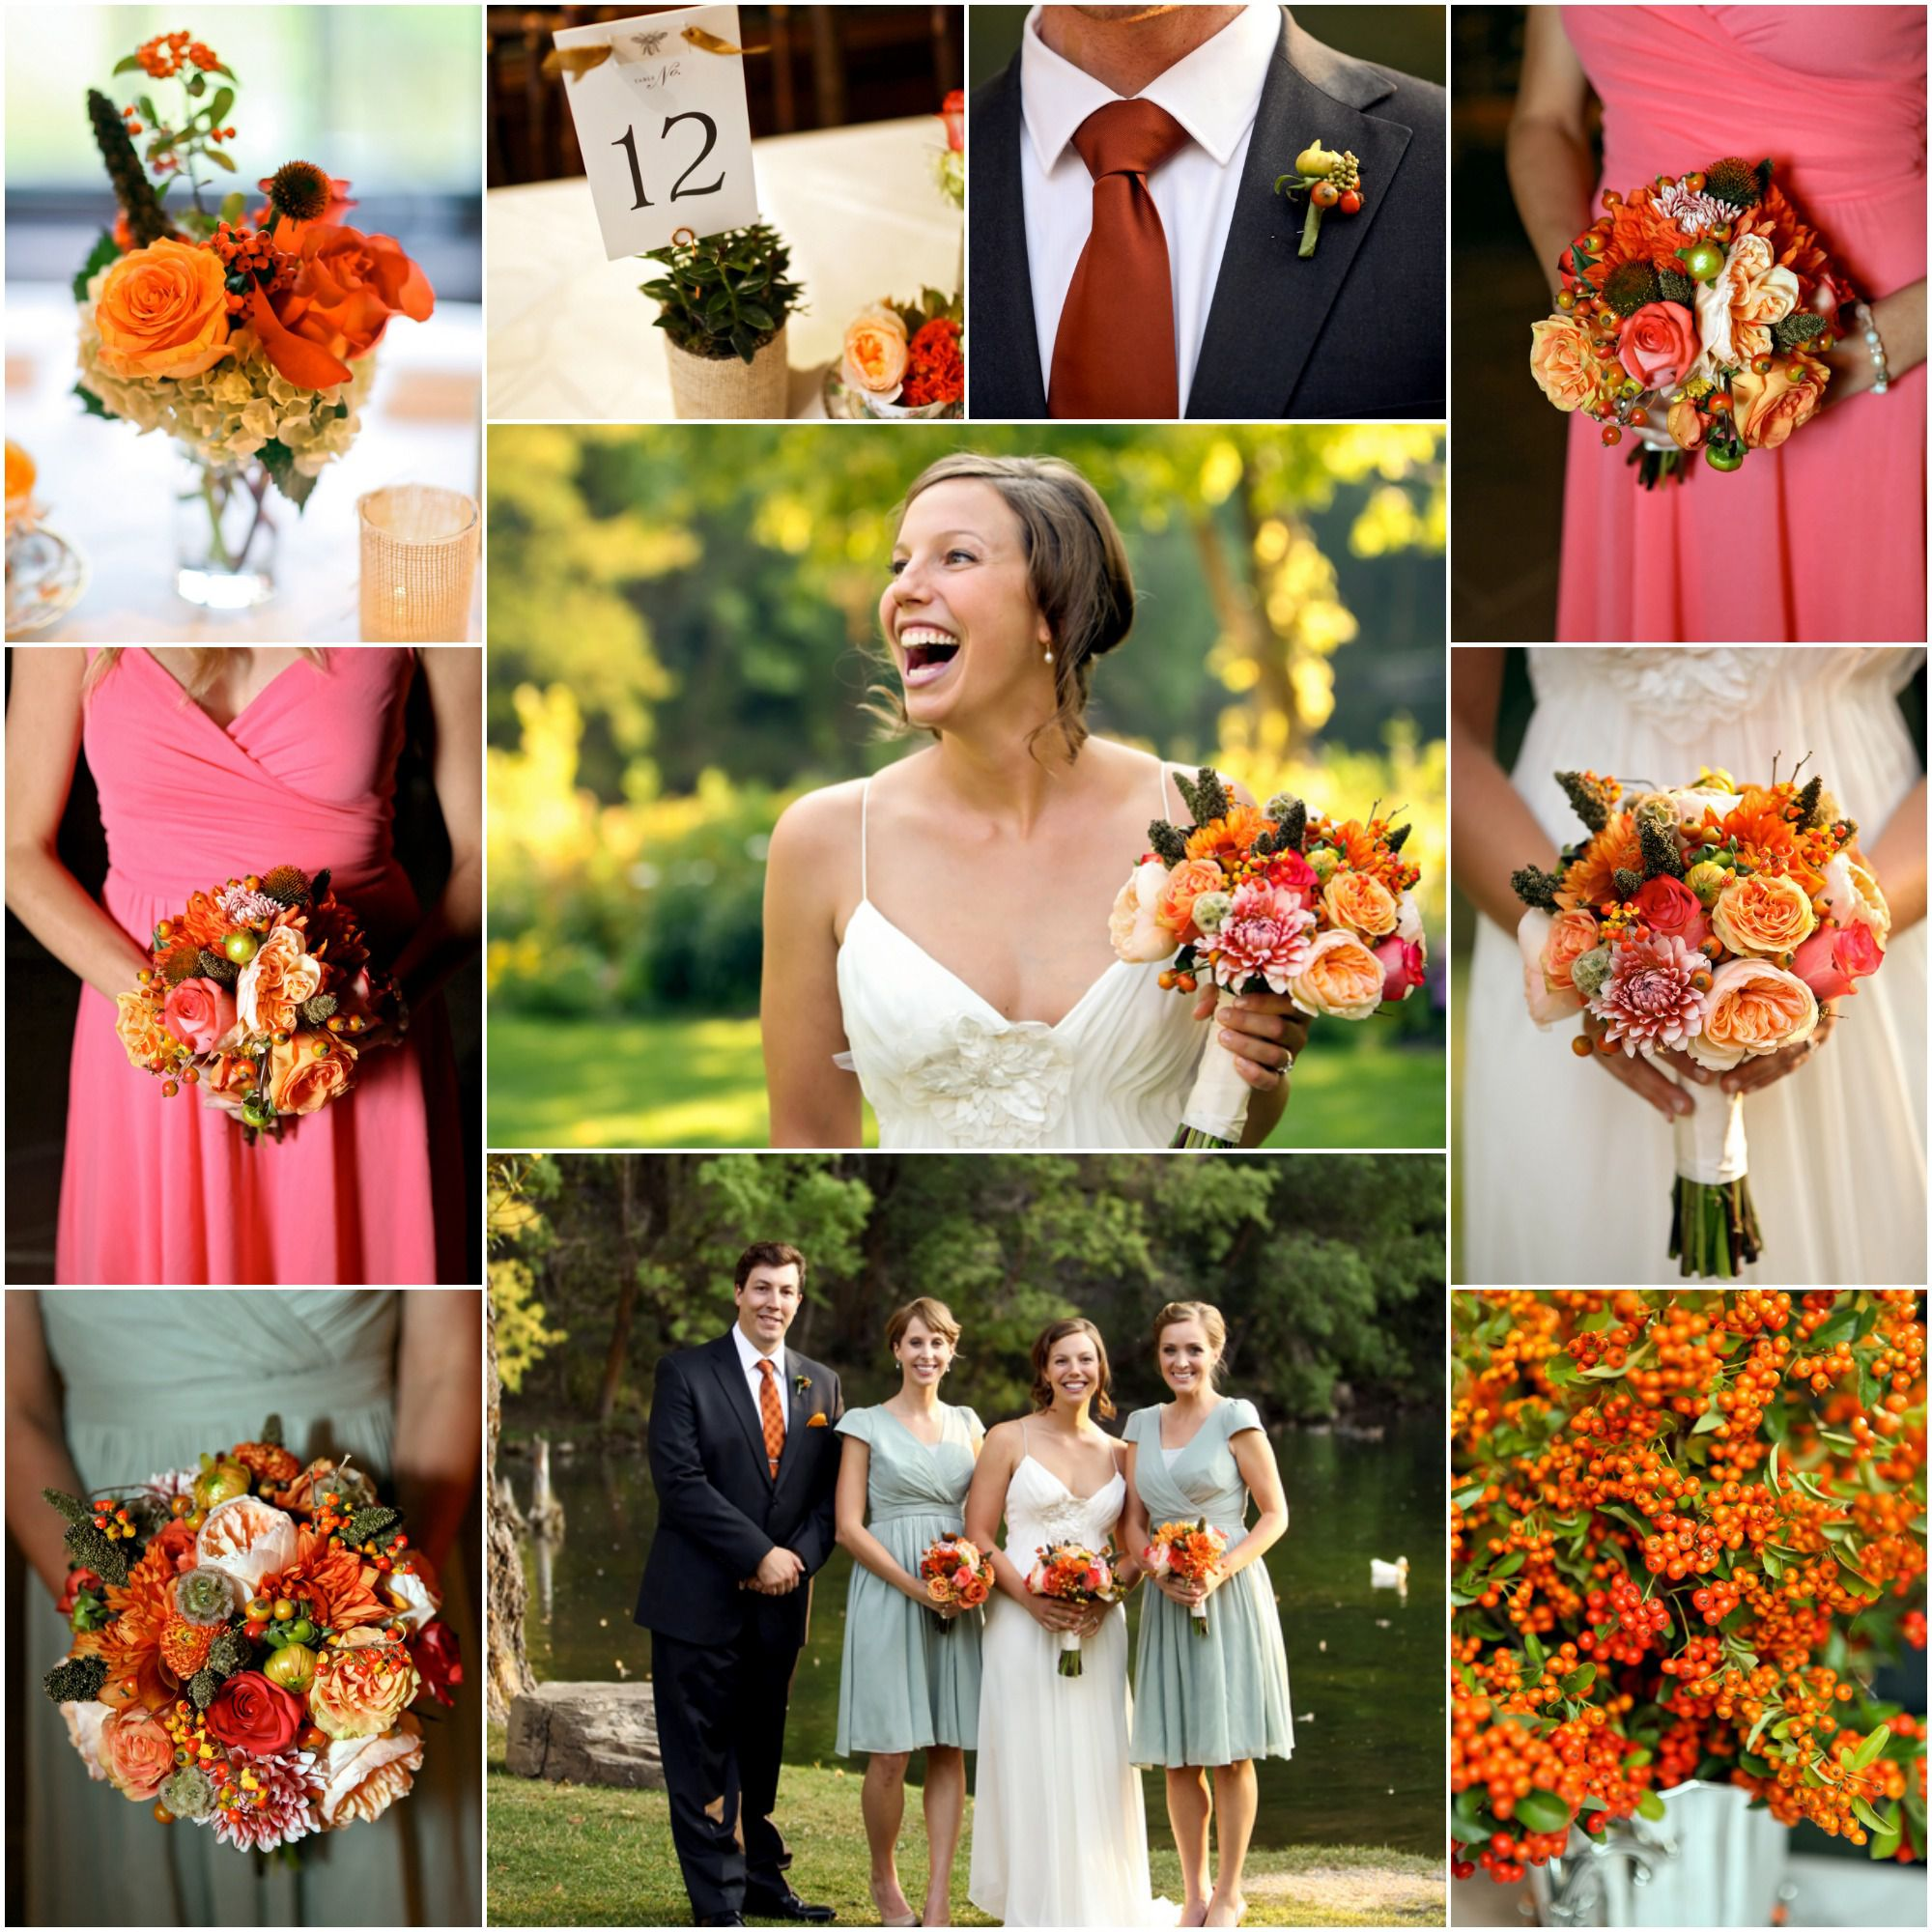 Fall Rustic Lodge Wedding  Rustic Wedding Chic